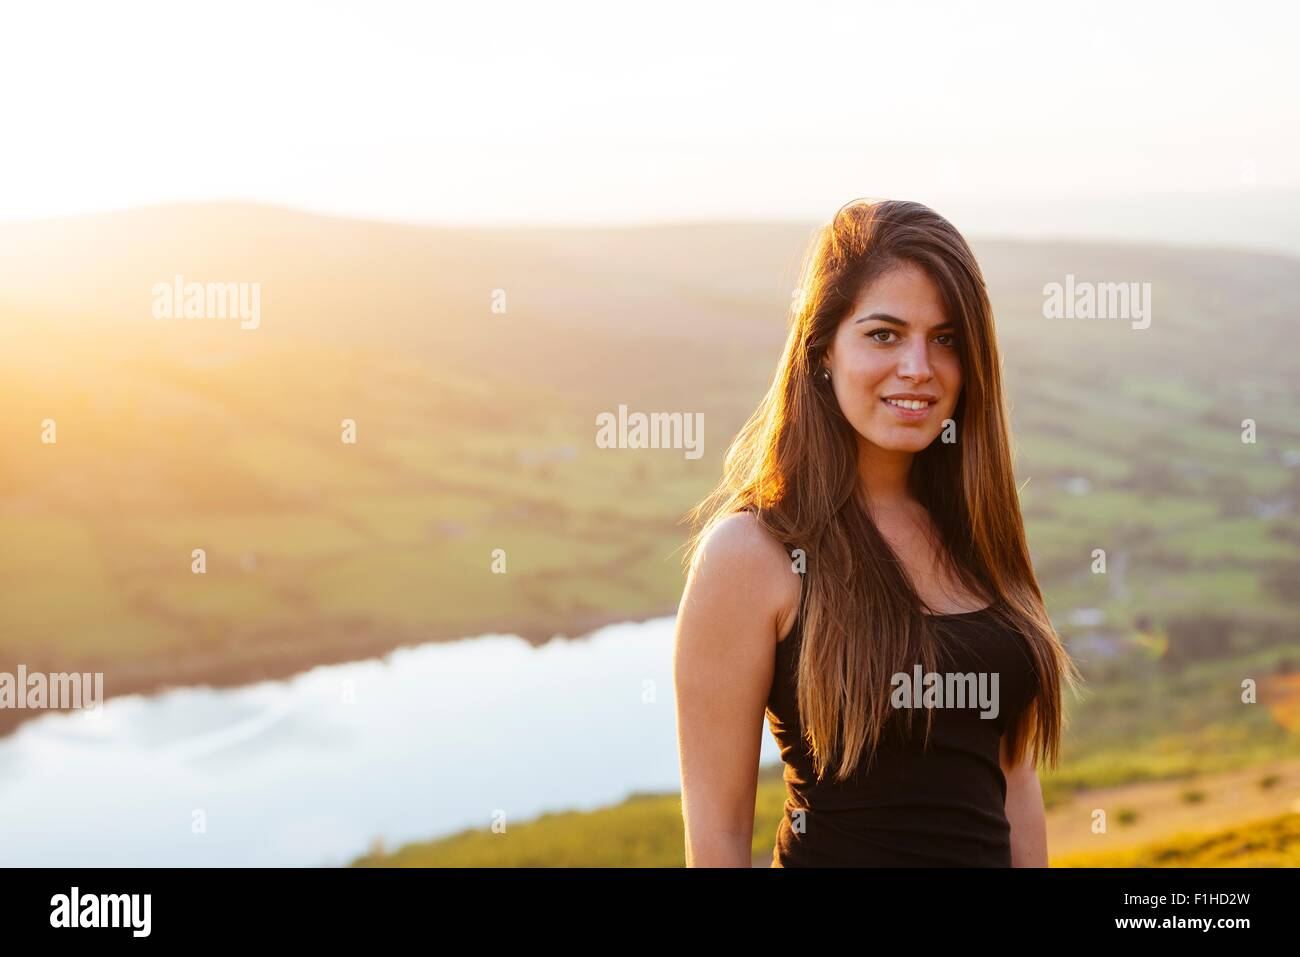 Portrait of young woman, Talybont Reservoir in Glyn Collwn valley, Brecon Beacons, Powys, Wales - Stock Image